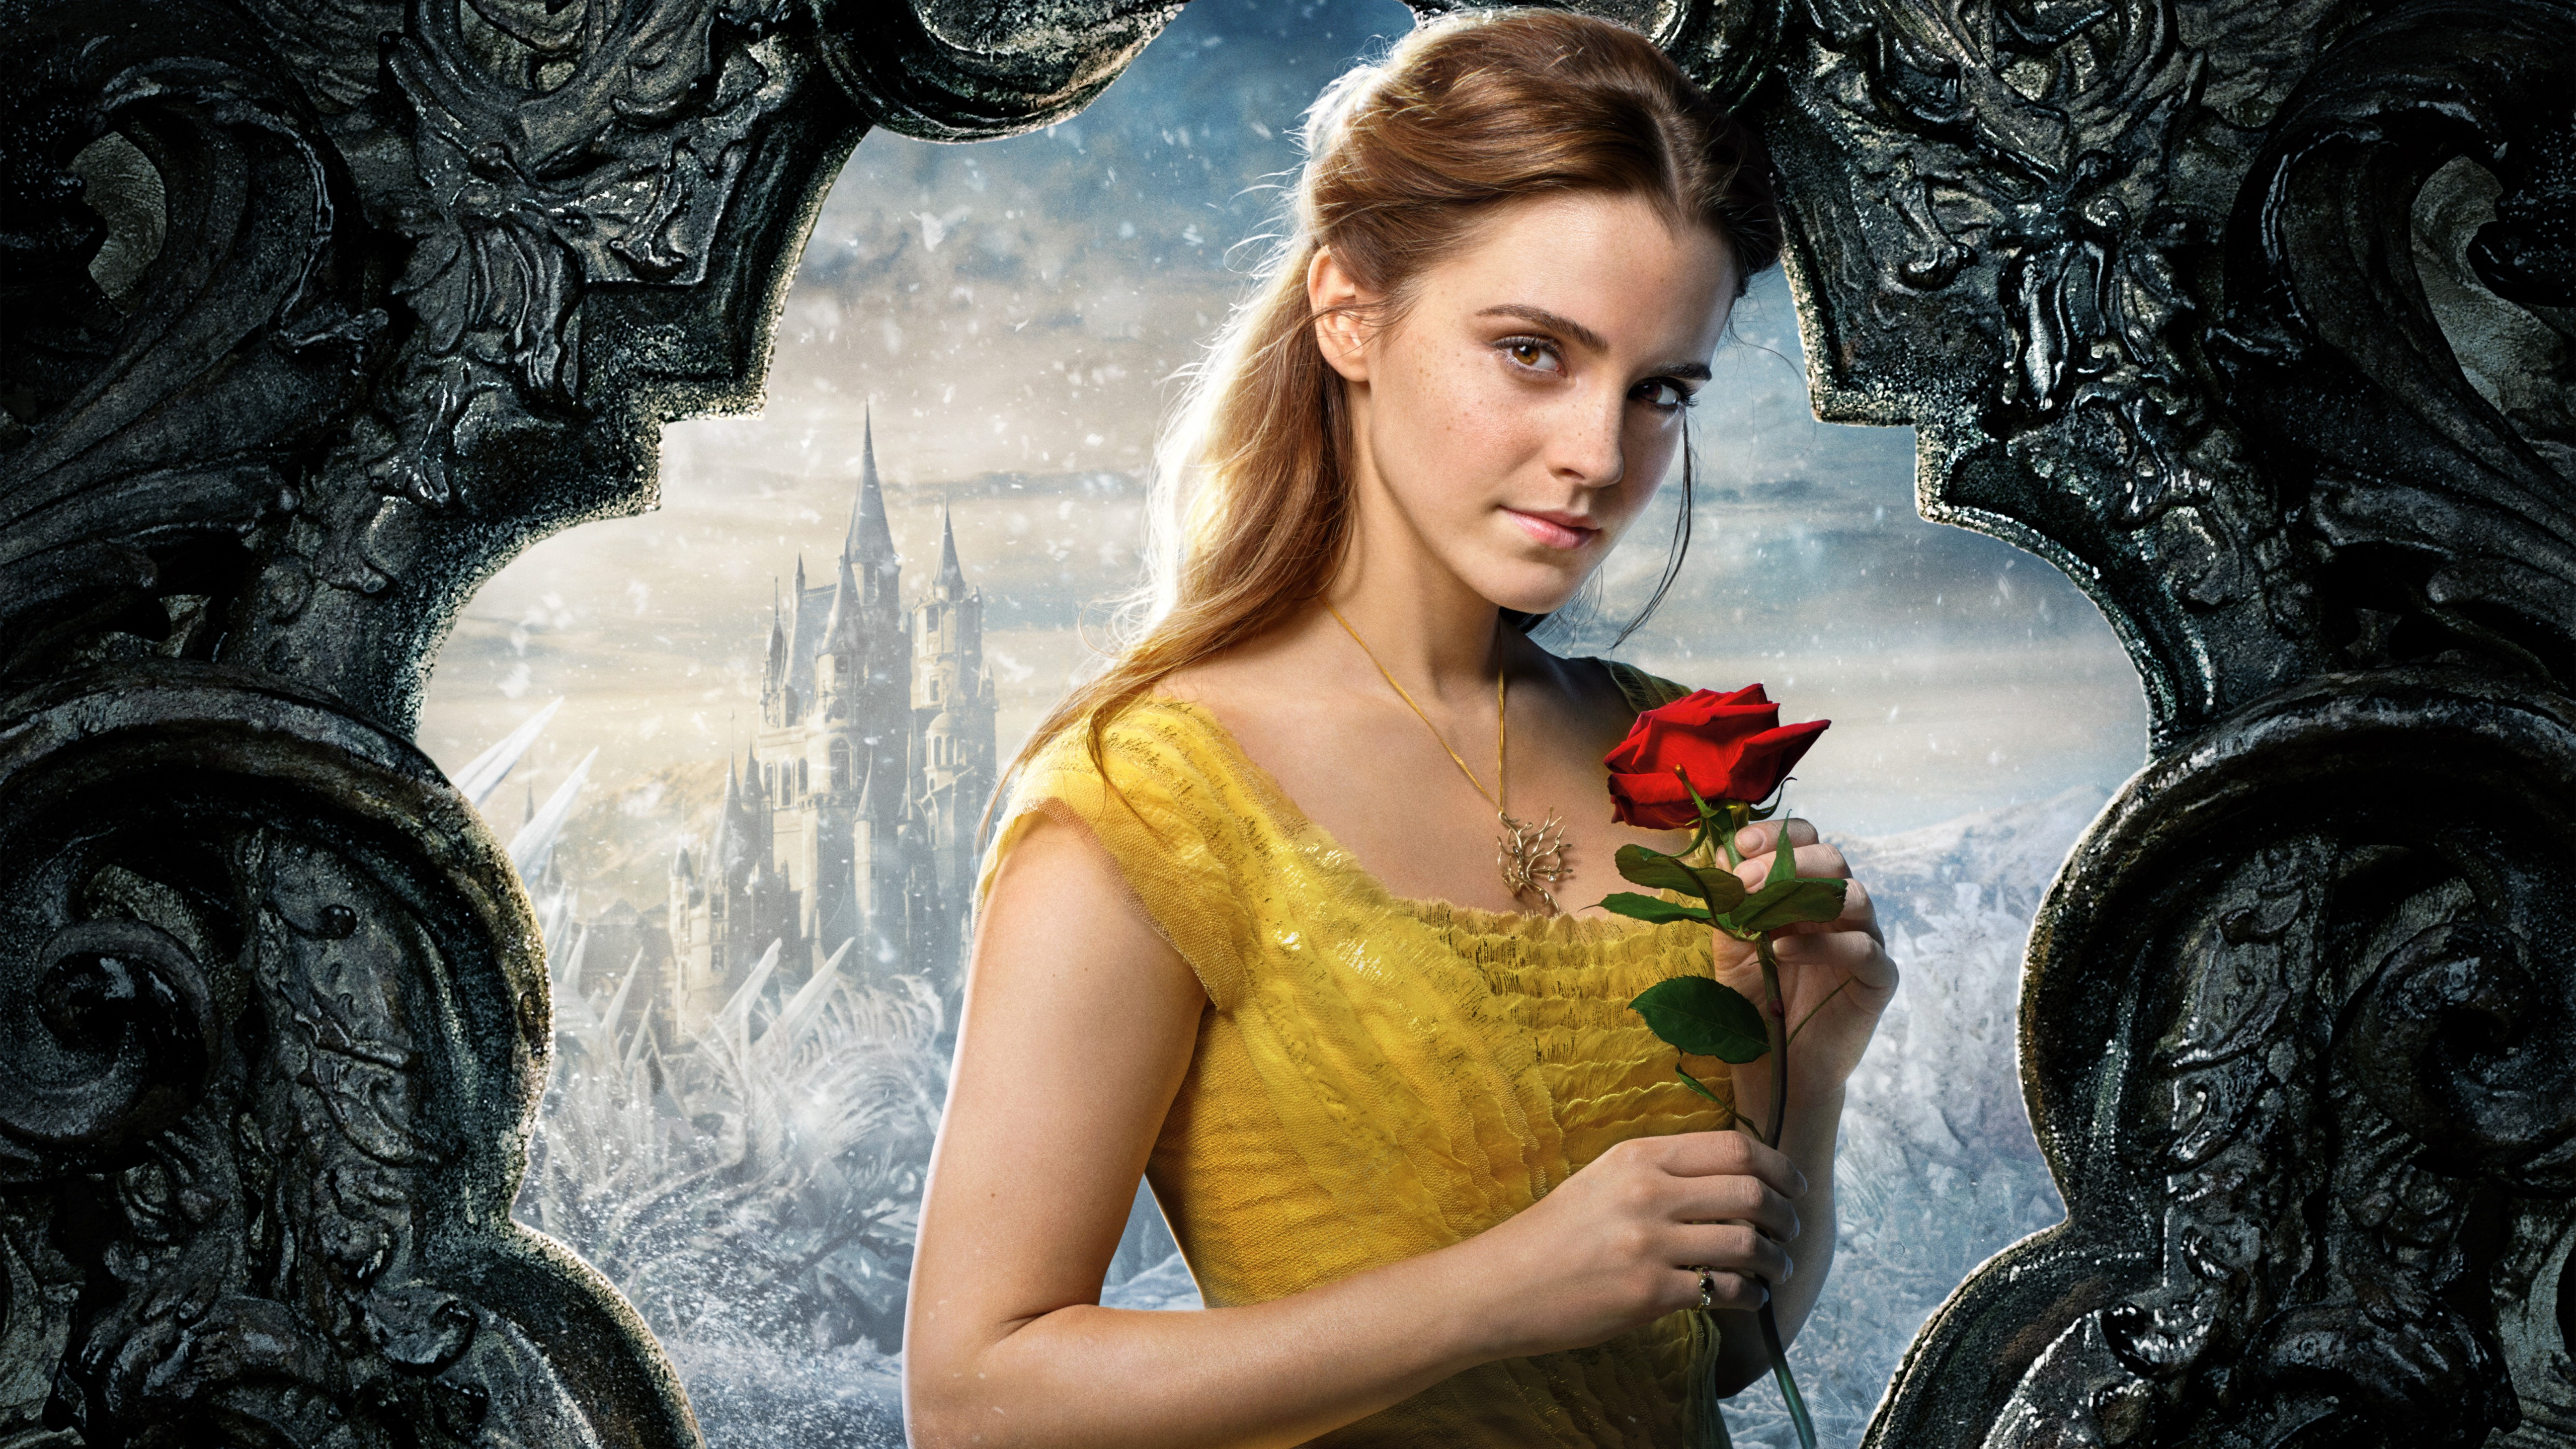 beauty and the beast emma watson, hd movies, 4k wallpapers, images